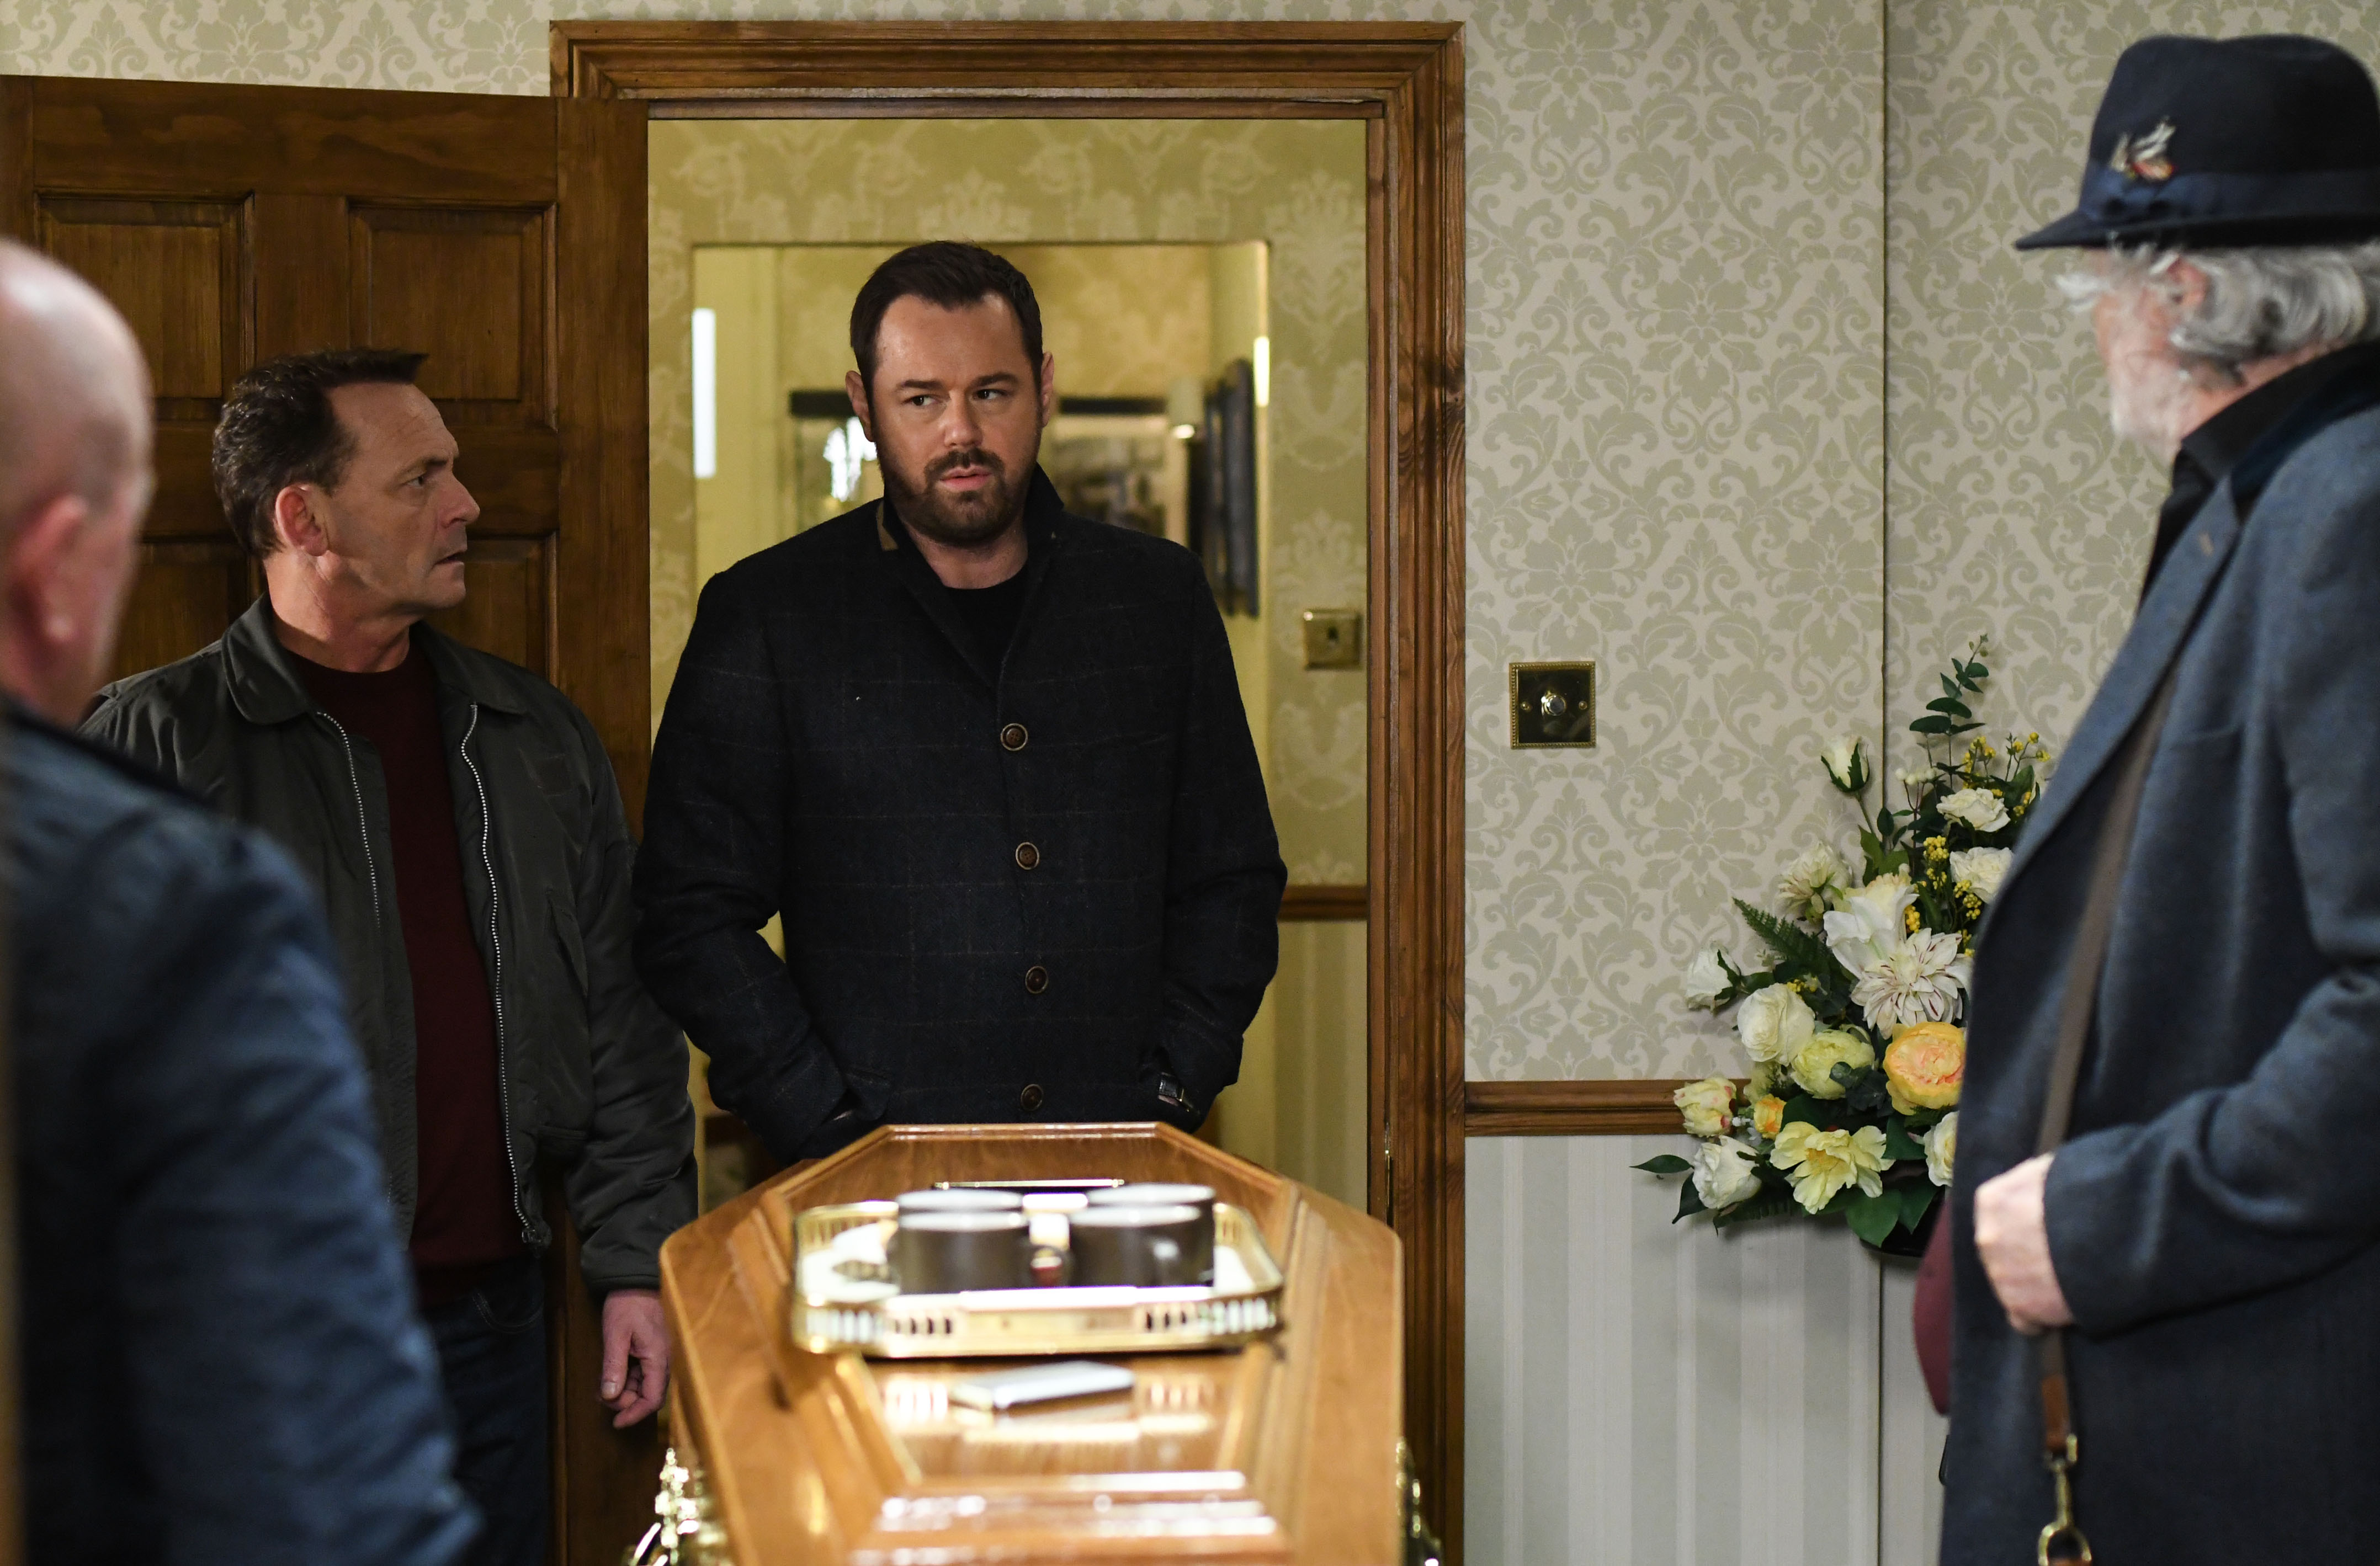 WARNING: Embargoed for publication until 00:00:01 on 23/12/2017 - Programme Name: EastEnders - October-December 2017 - TX: 29/12/2017 - Episode: EastEnders - October-December 2017 - 5627 (No. 5627) - Picture Shows: *STRICTLY NOT FOR PUBLICATION UNTIL 00:01HRS SATURDAY 23rd DECEMBER 2017* 